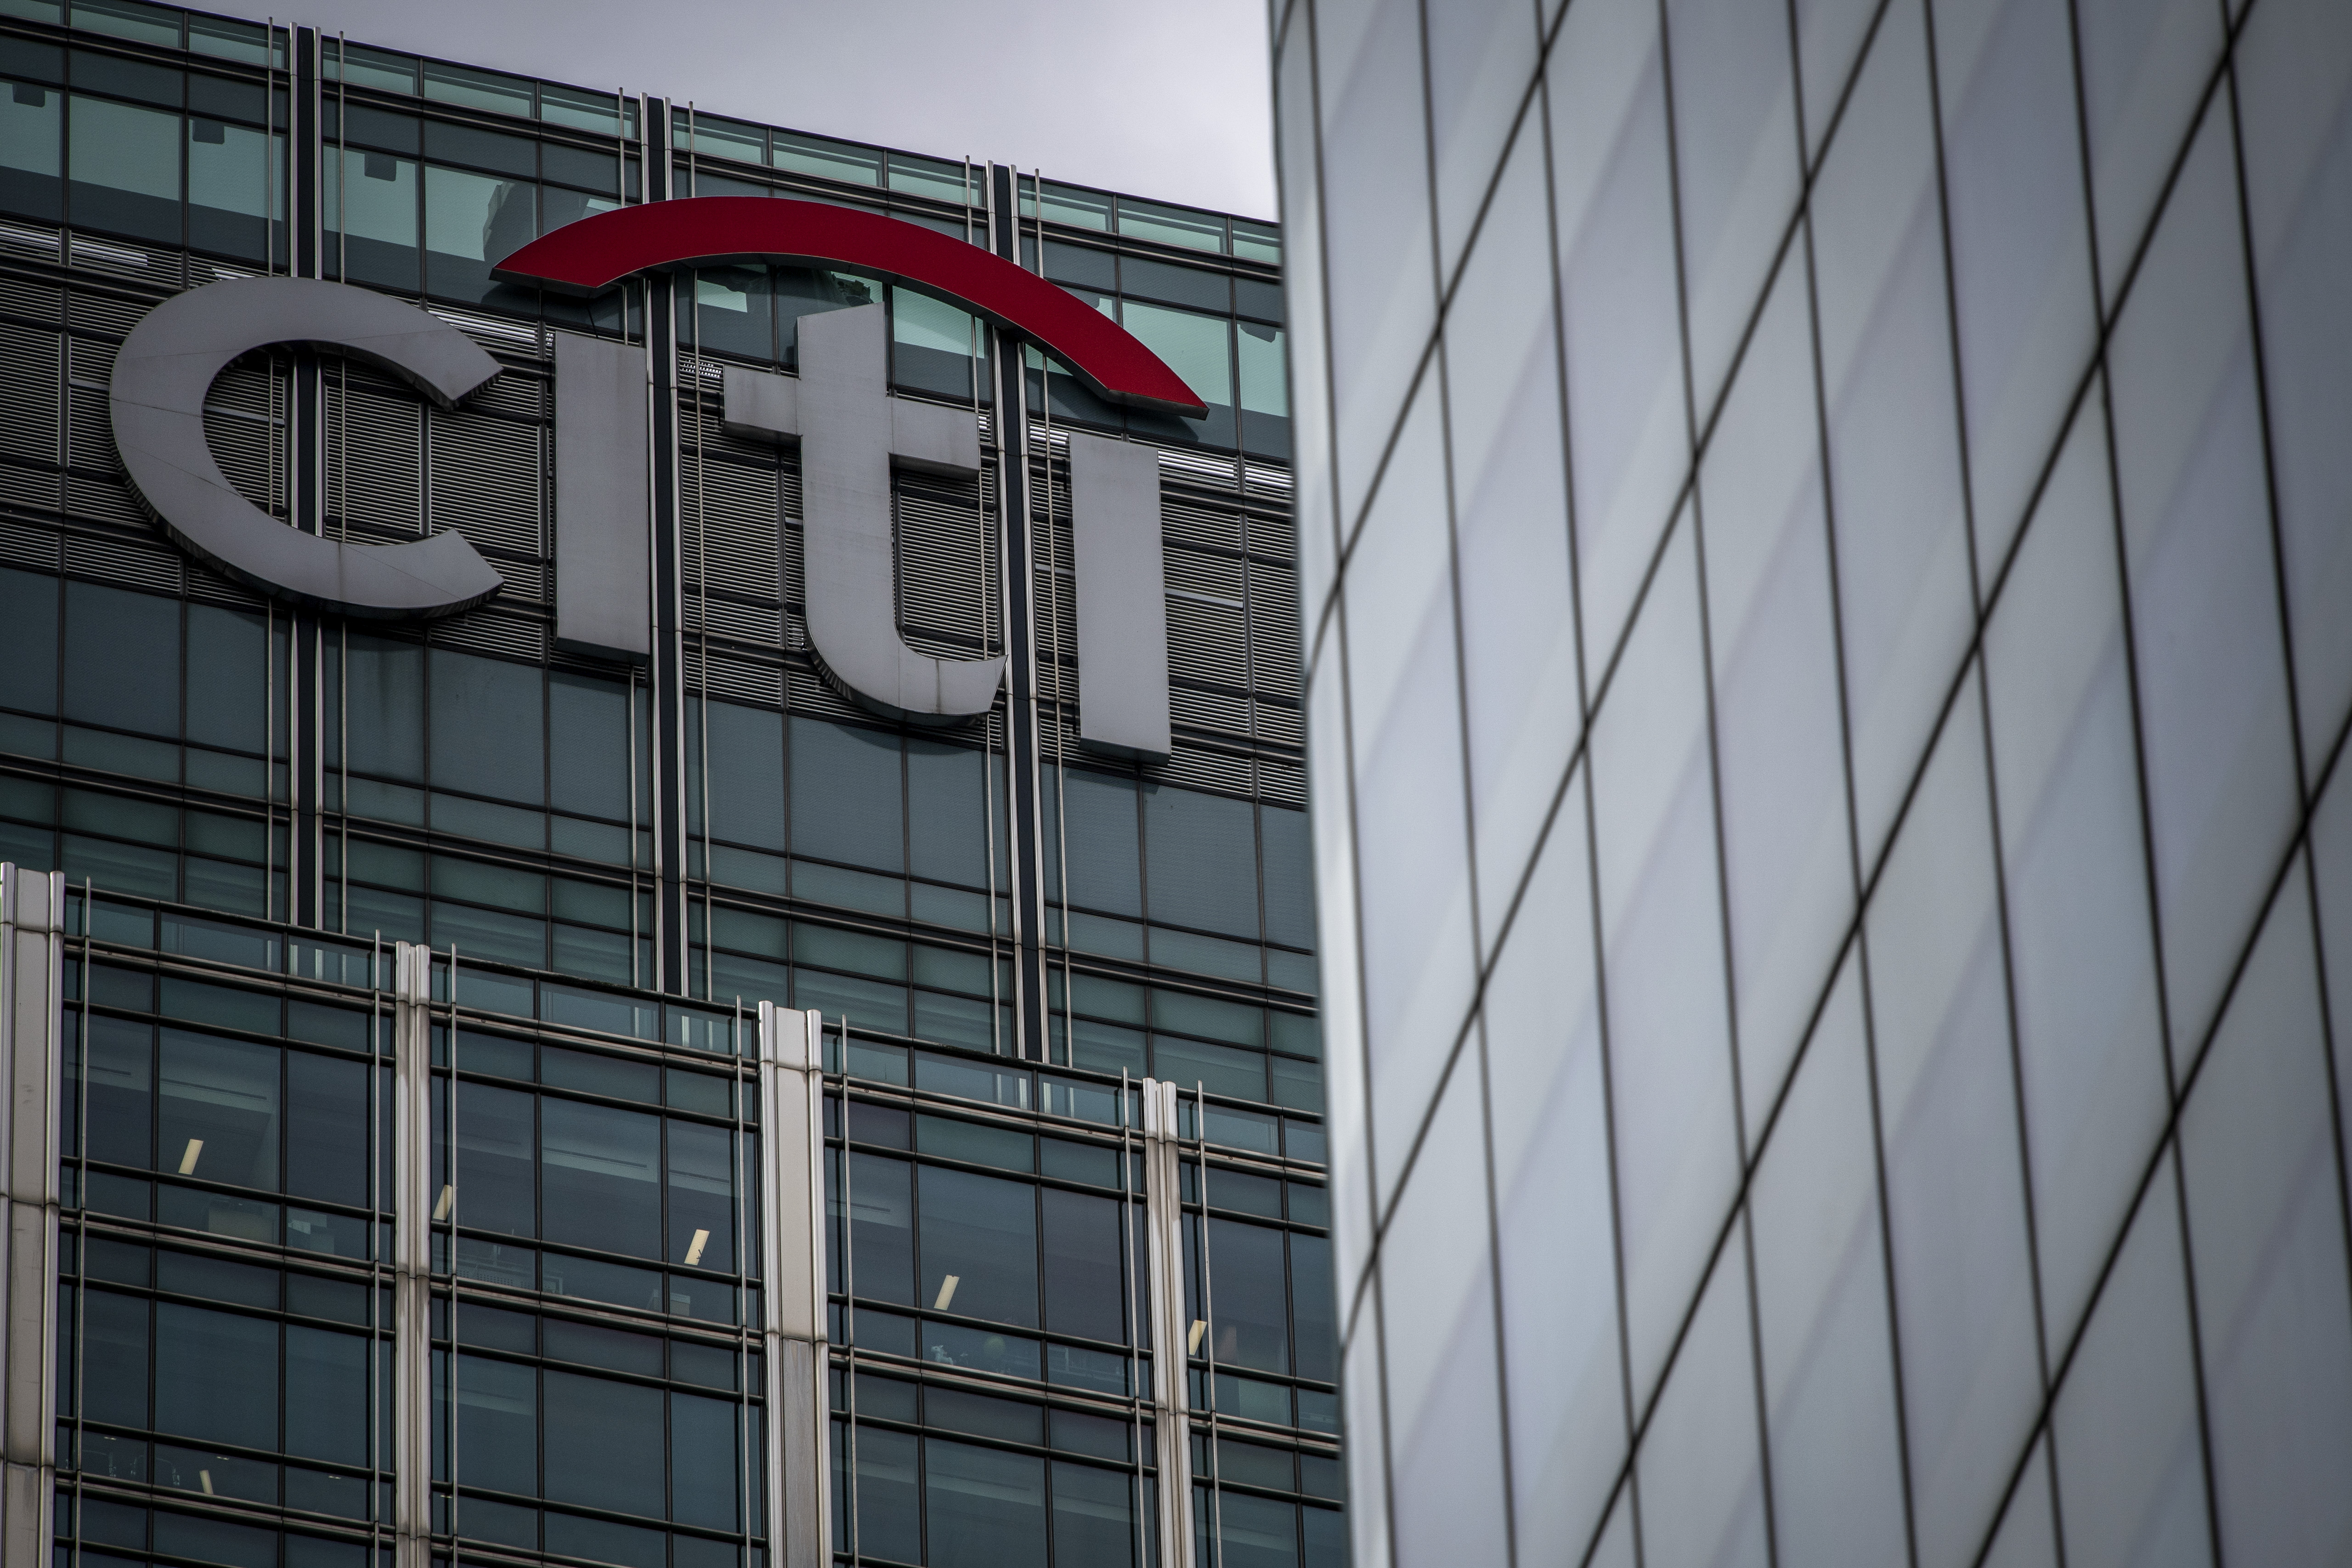 Citigroup is cutting hundreds of trading jobs, a move that proves trouble for the banking industry.